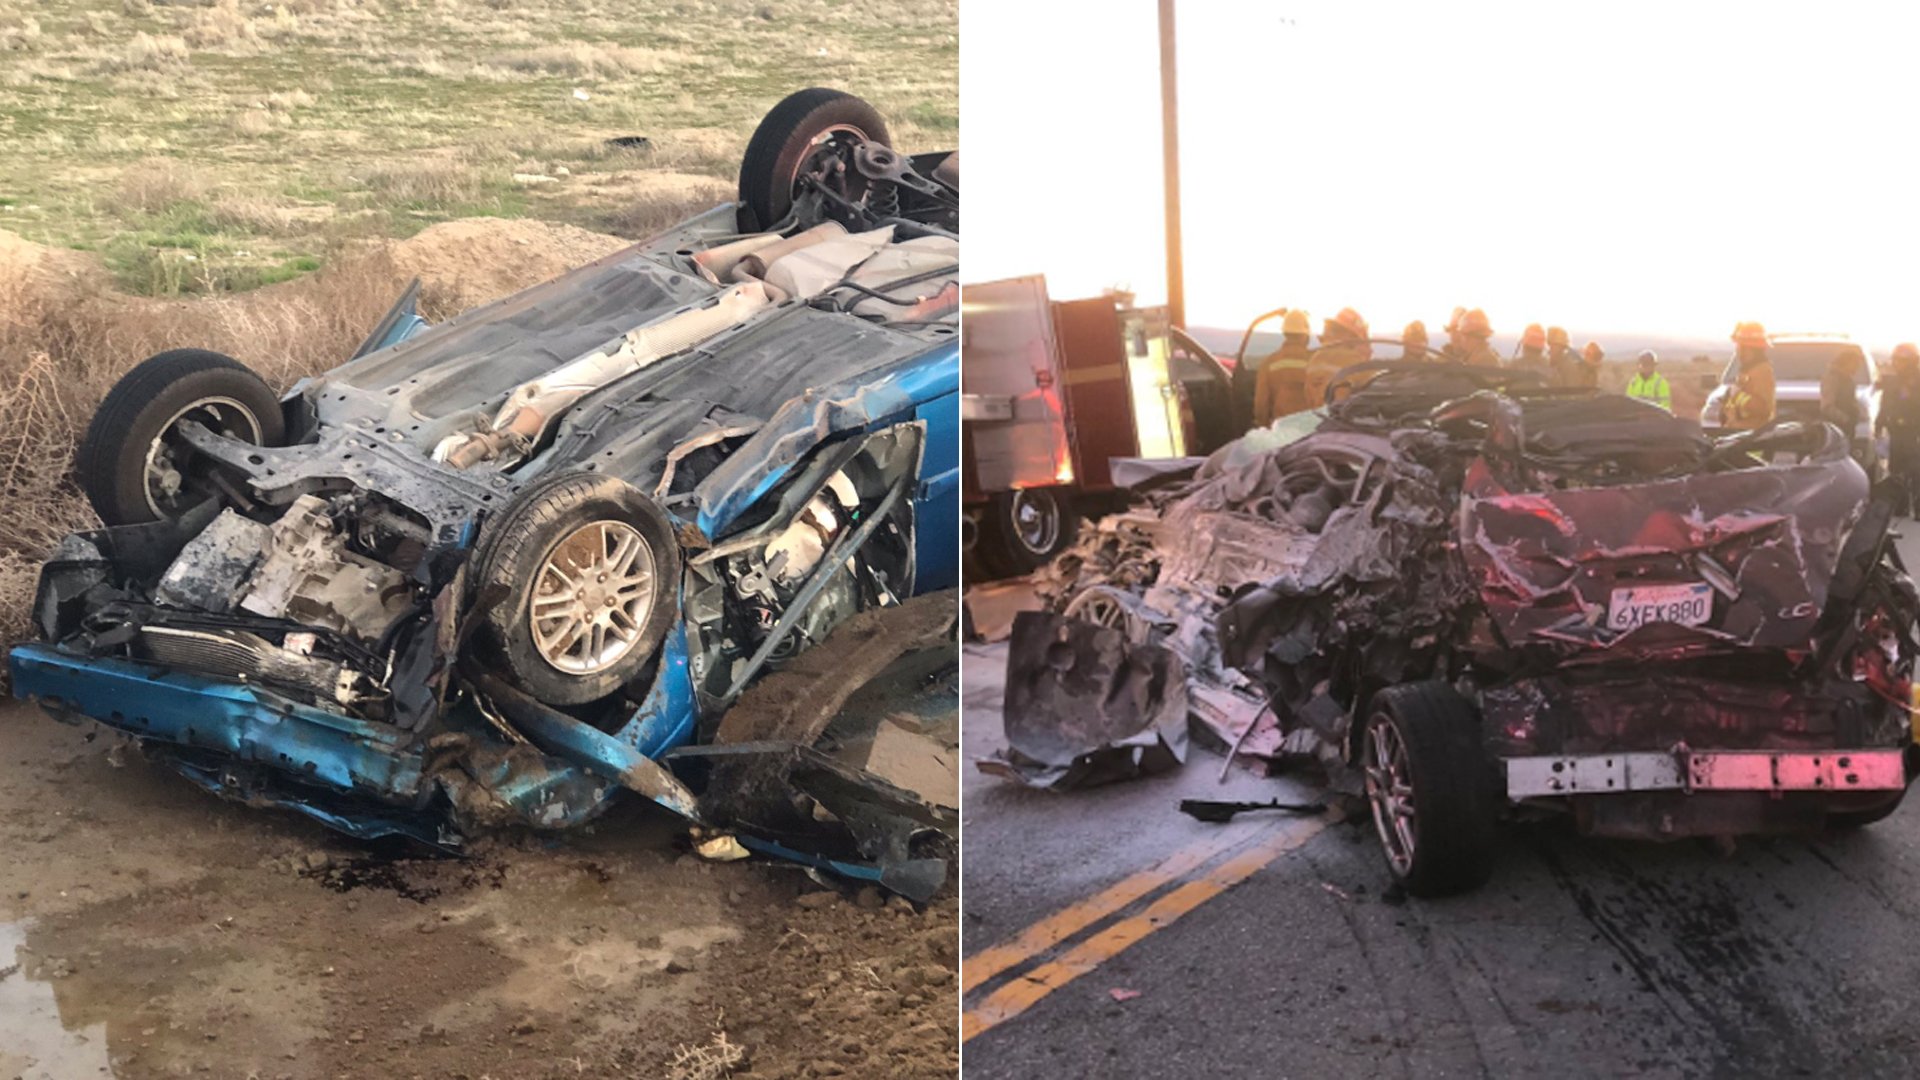 Two cars involved in a fatal, multivehicle crash on Highway 138 in Lancaster are seen in photos released by the Los Angeles County Fire Department.